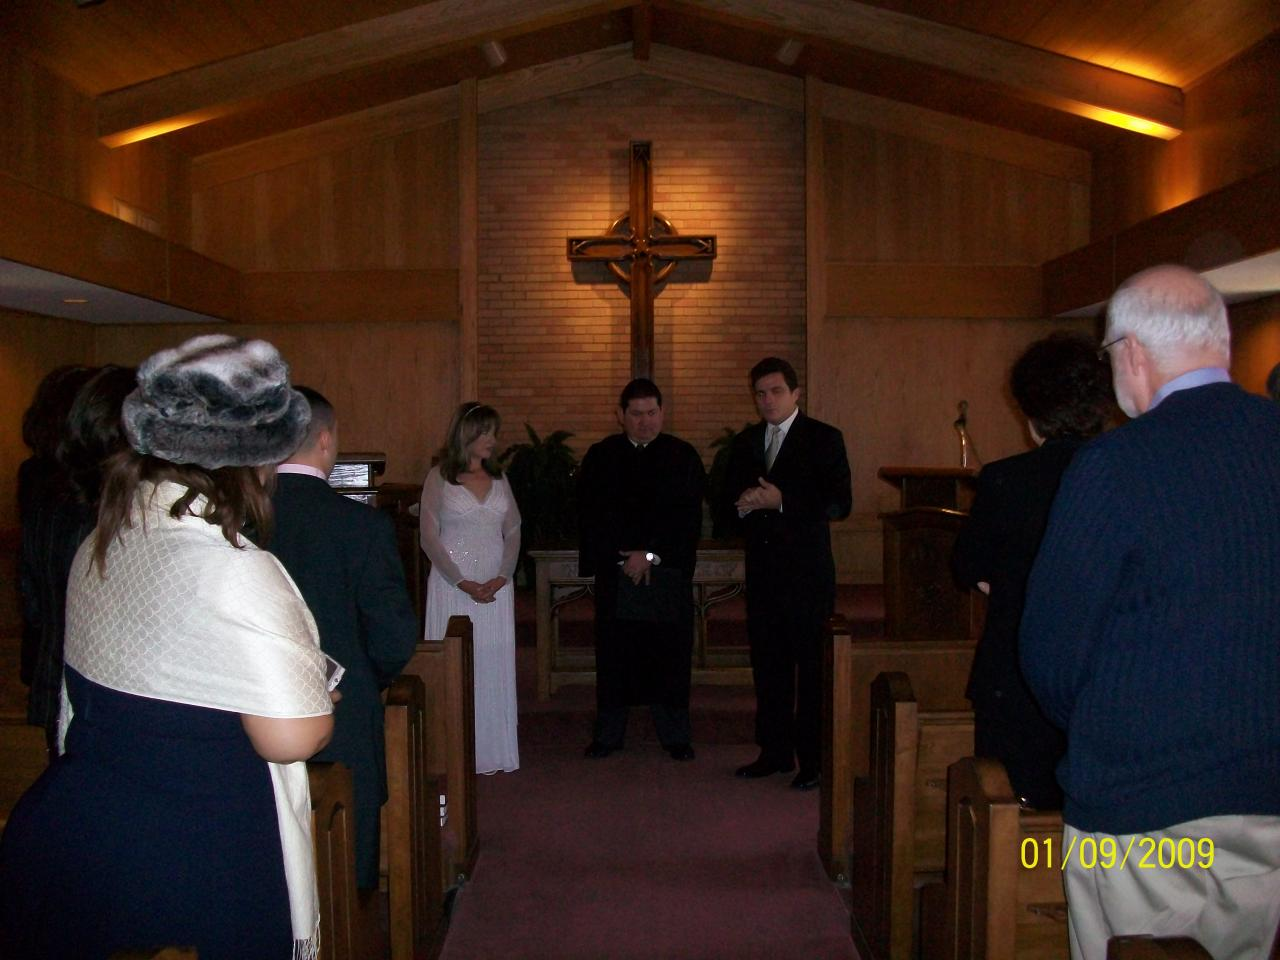 From this moment wedding ministries picture gallery